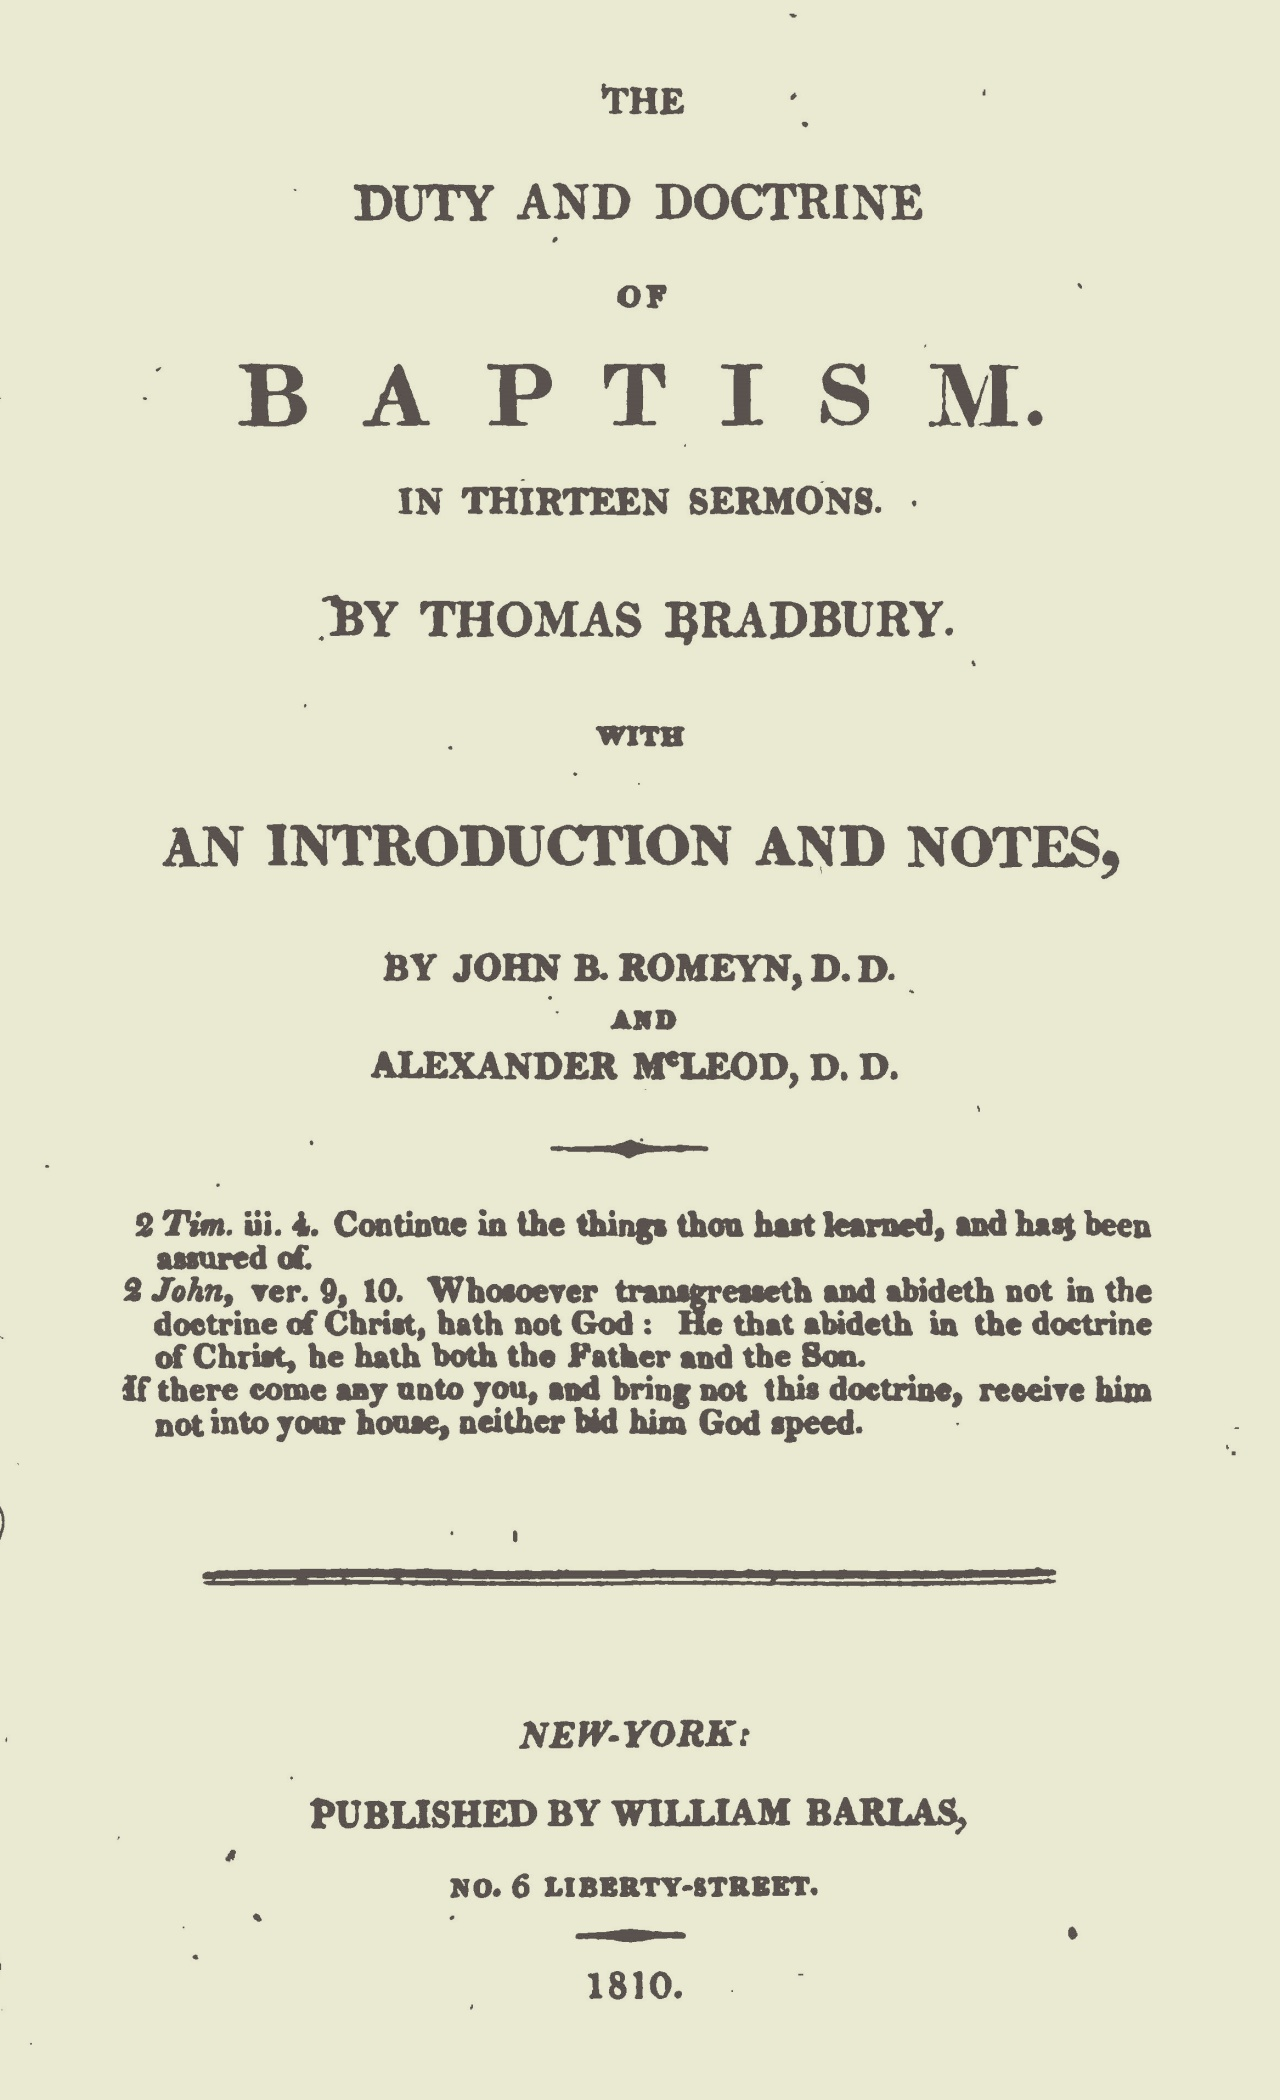 McLeod, Alexander, Introduction to Thomas Bradbury's The Duty and Doctrine of Baptism Title Page.jpg